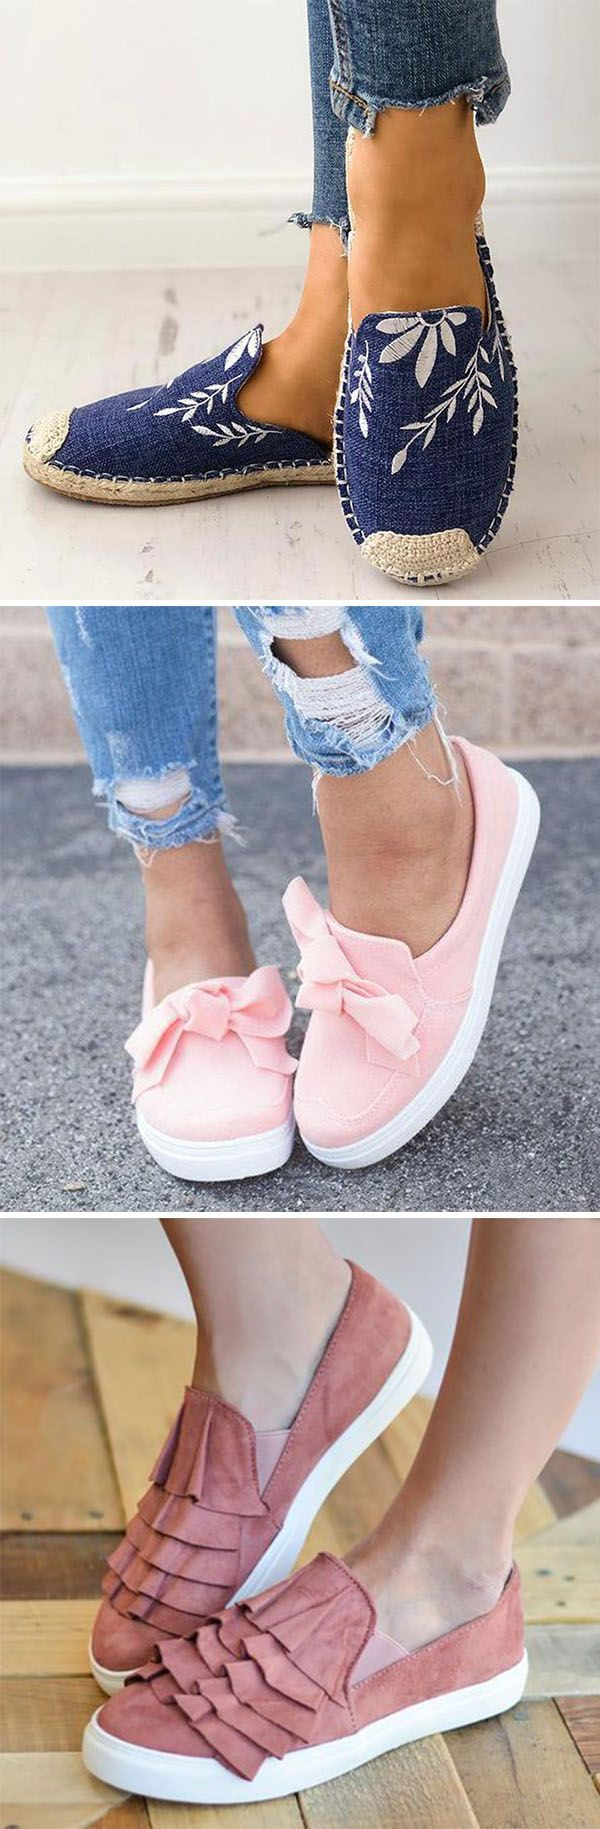 49f686f53f Hot Sale!Women Nubuck Loafers Casual Bowknot Shoes | clothes ...